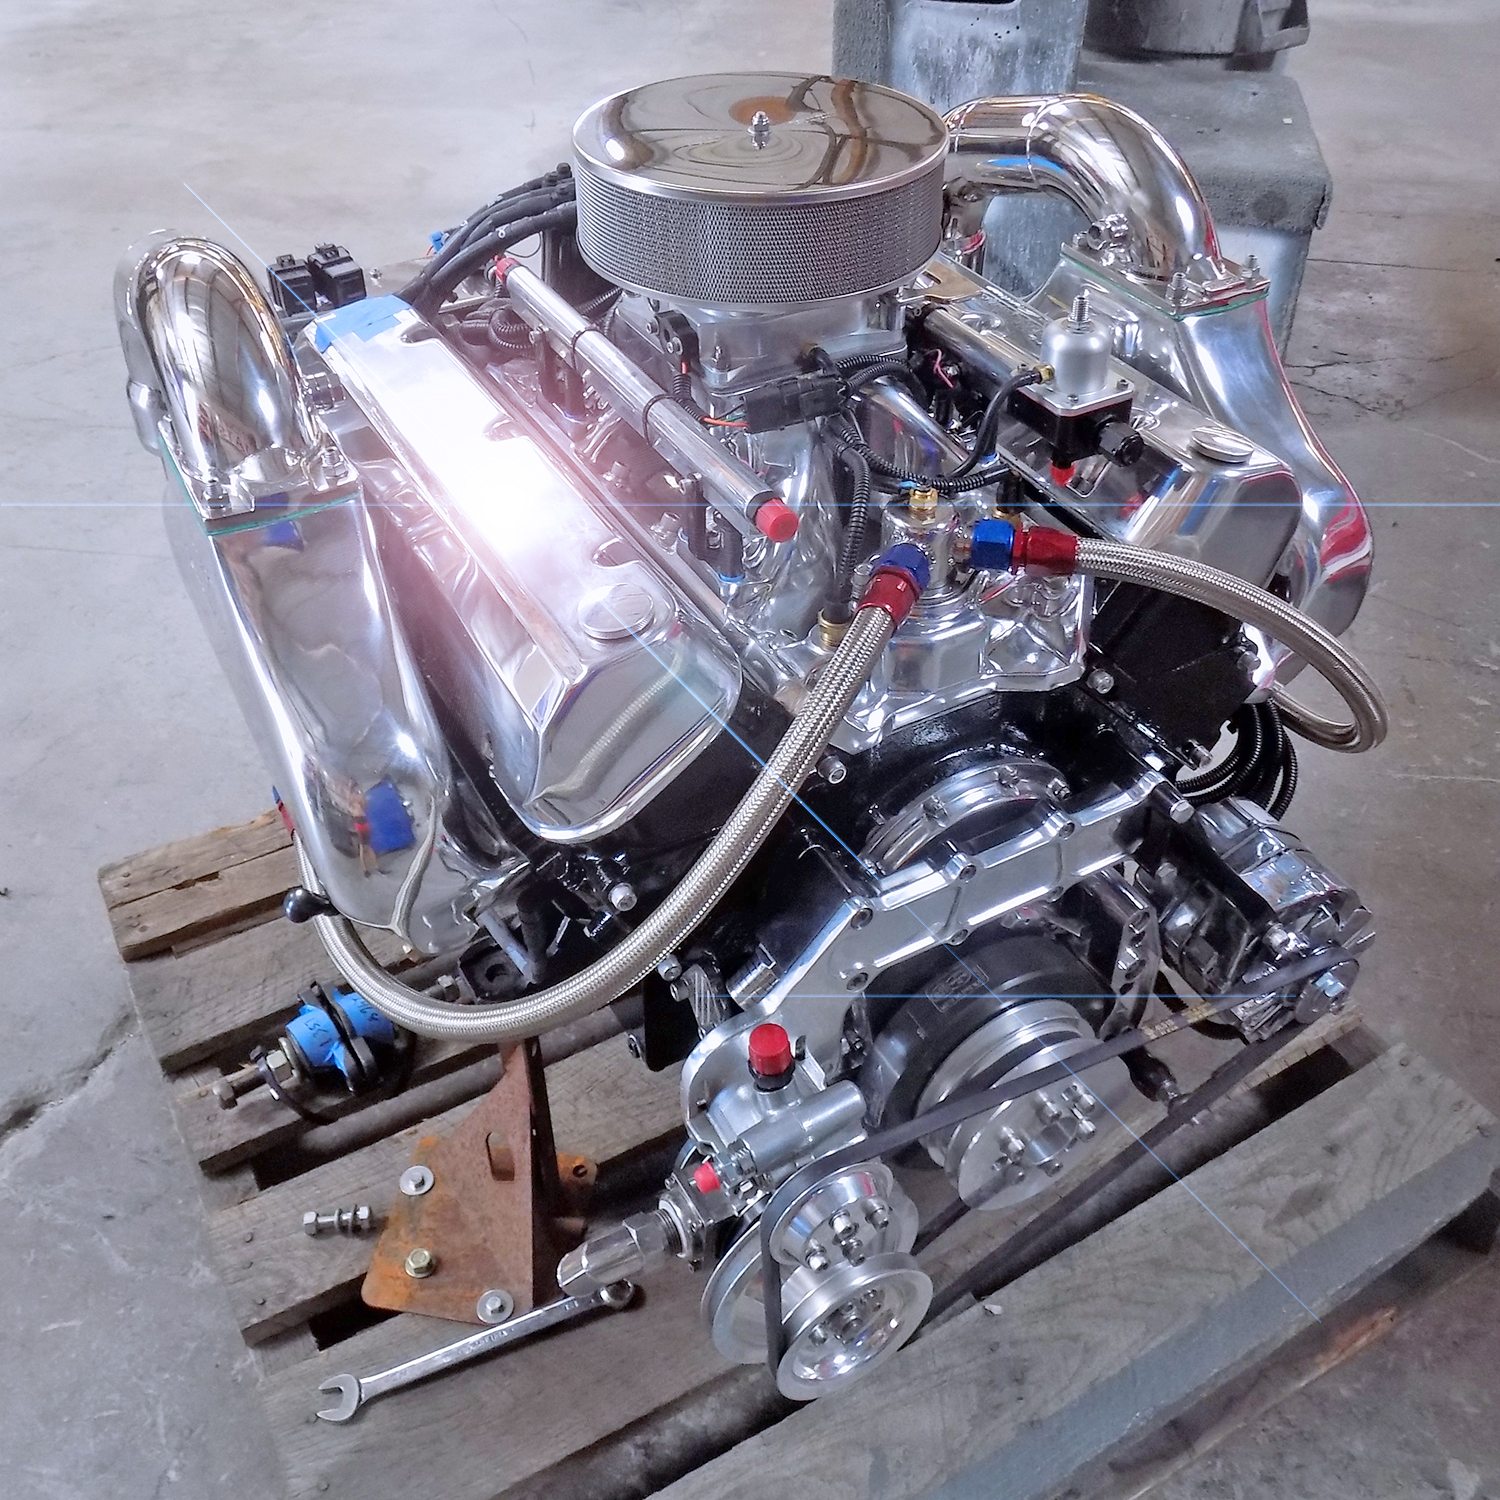 Lavey Craft Uncle Dave new Boostpower engine 20.8 Sebring - pic 2.jpg